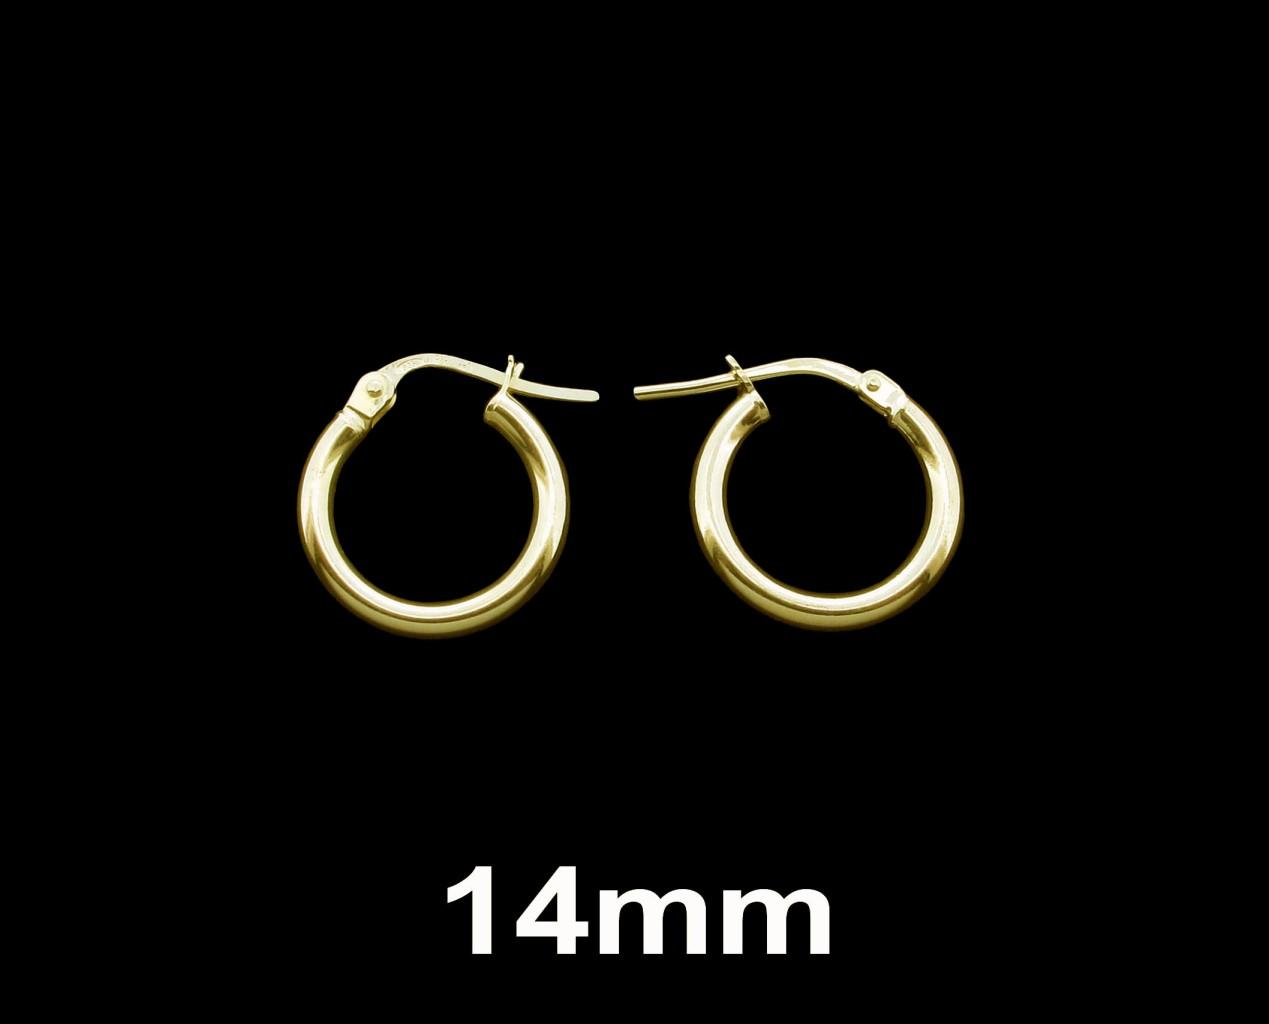 9ct Gold 14mm Hoops Sleeper Earrings WIBGK6